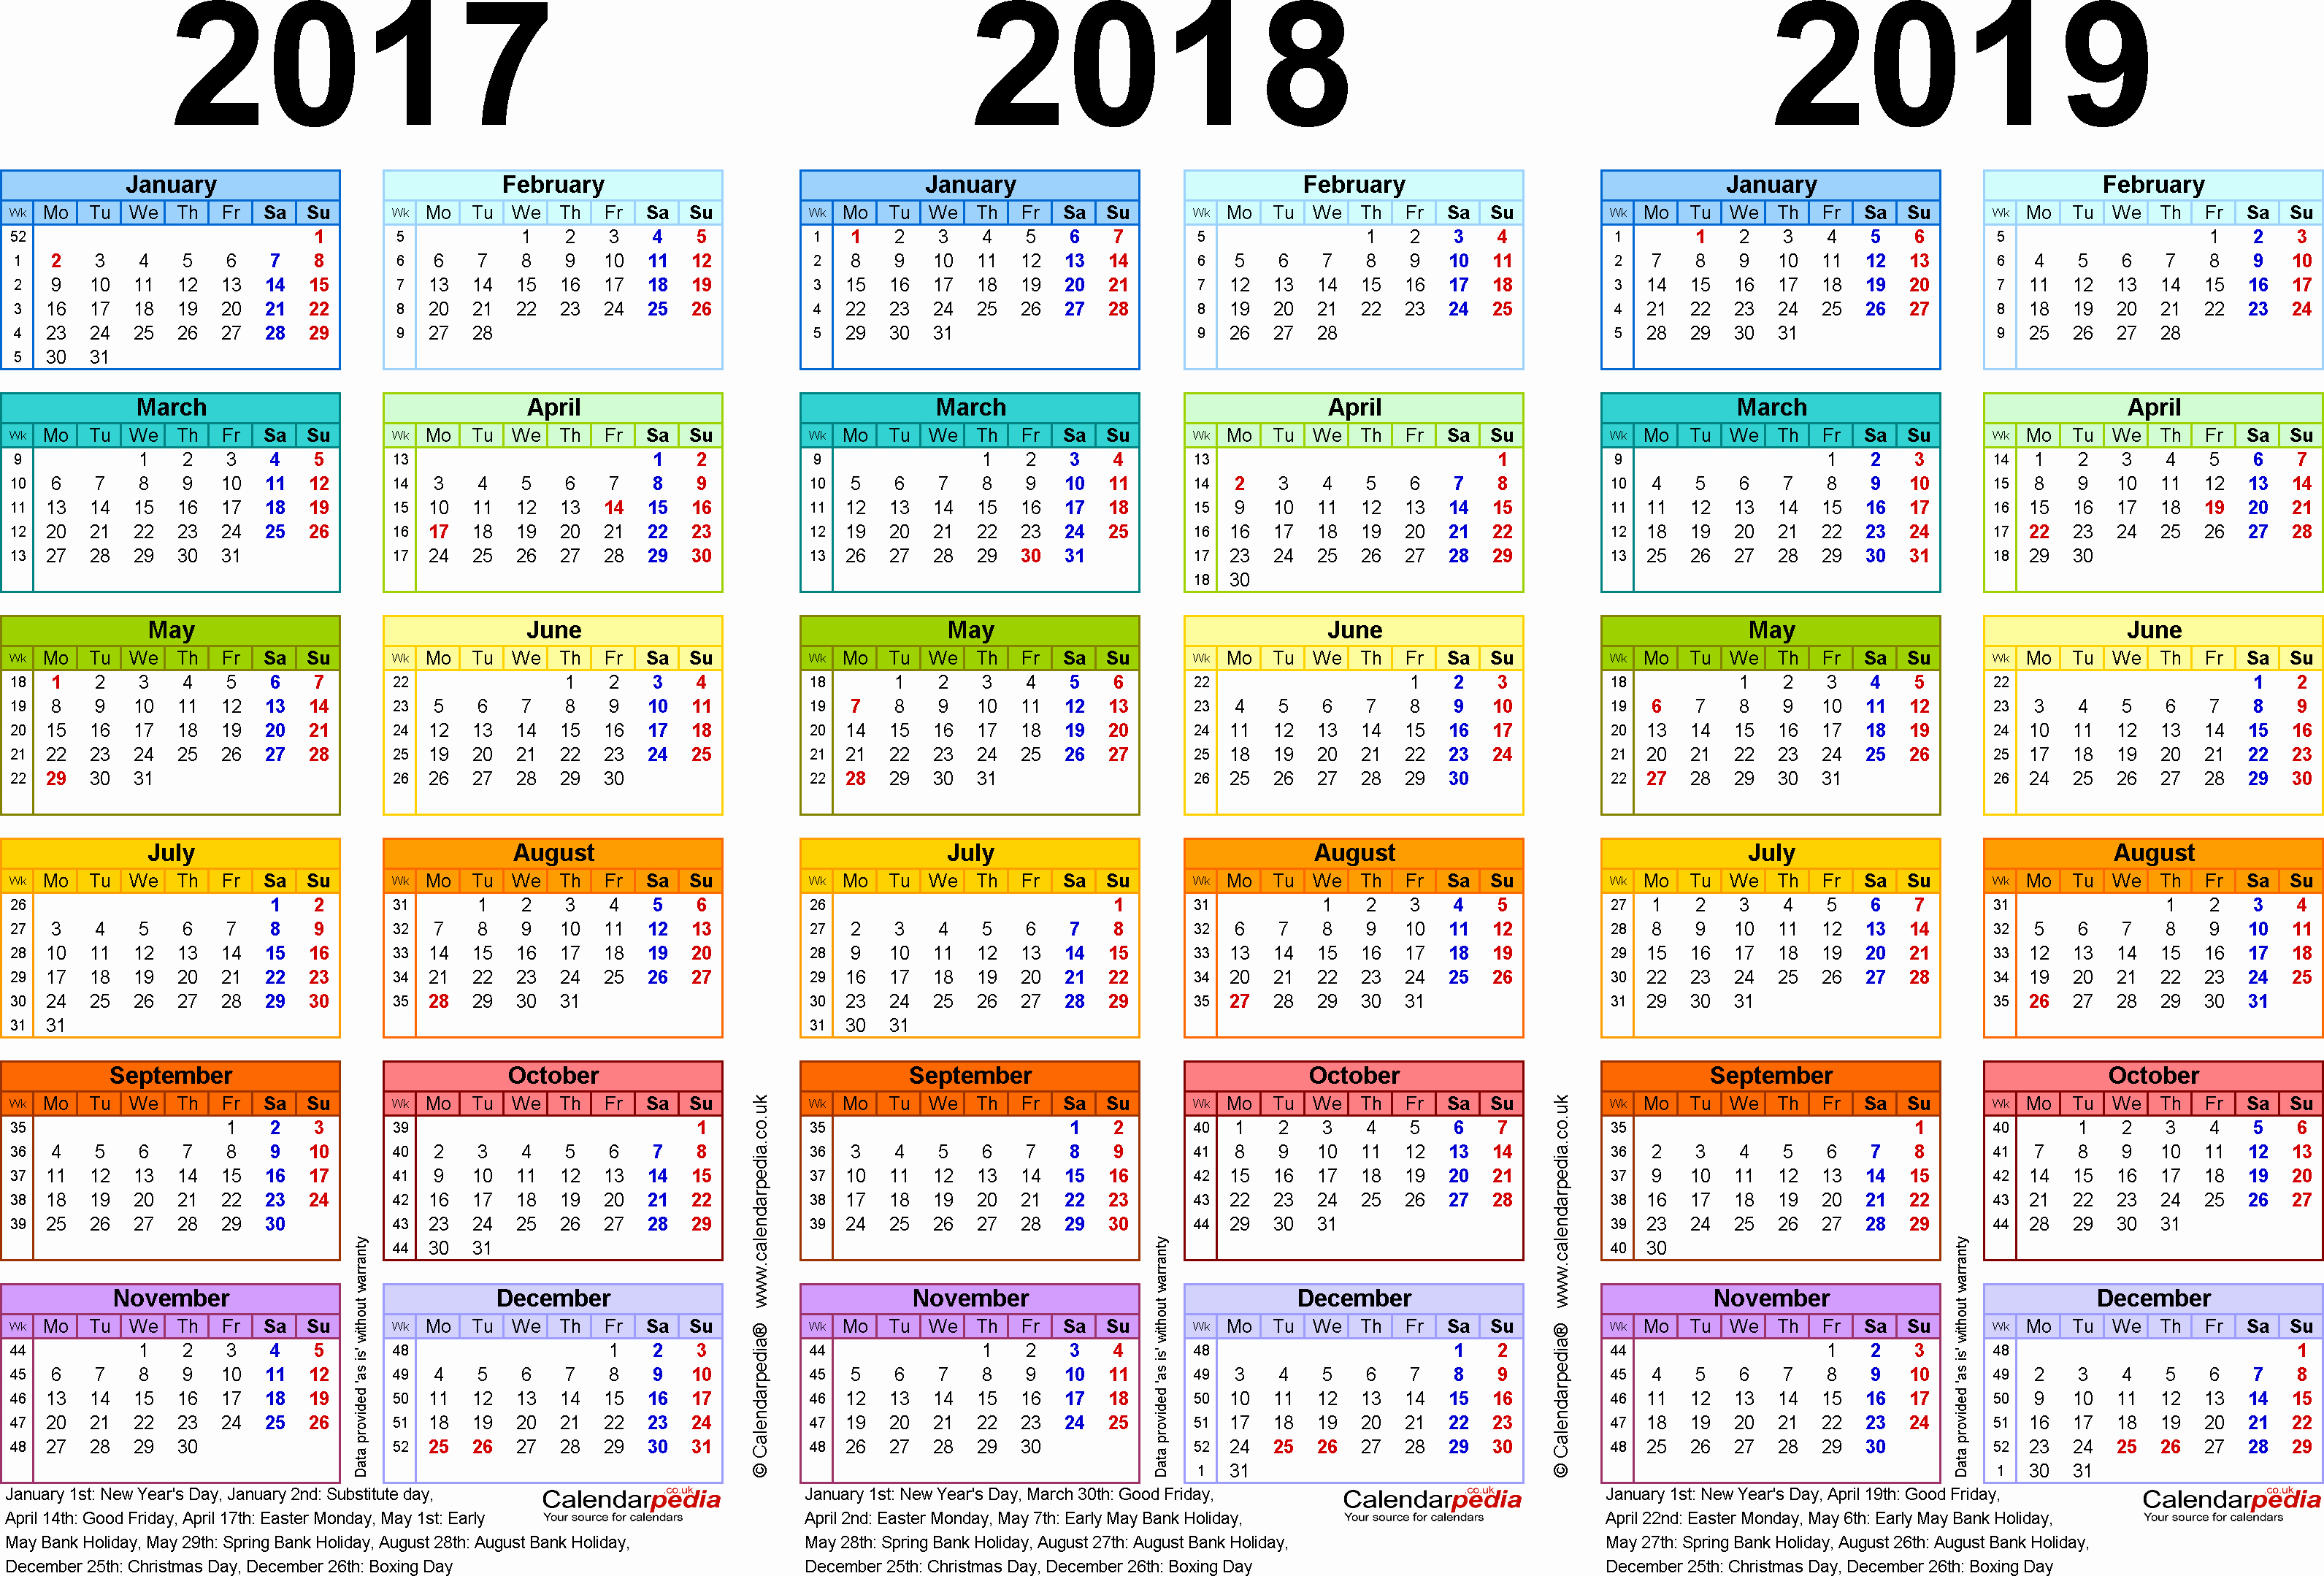 2019 Biweekly Payroll Calendar Excel Luxury Three Year Calendars for 2017 2018 & 2019 Uk for Pdf